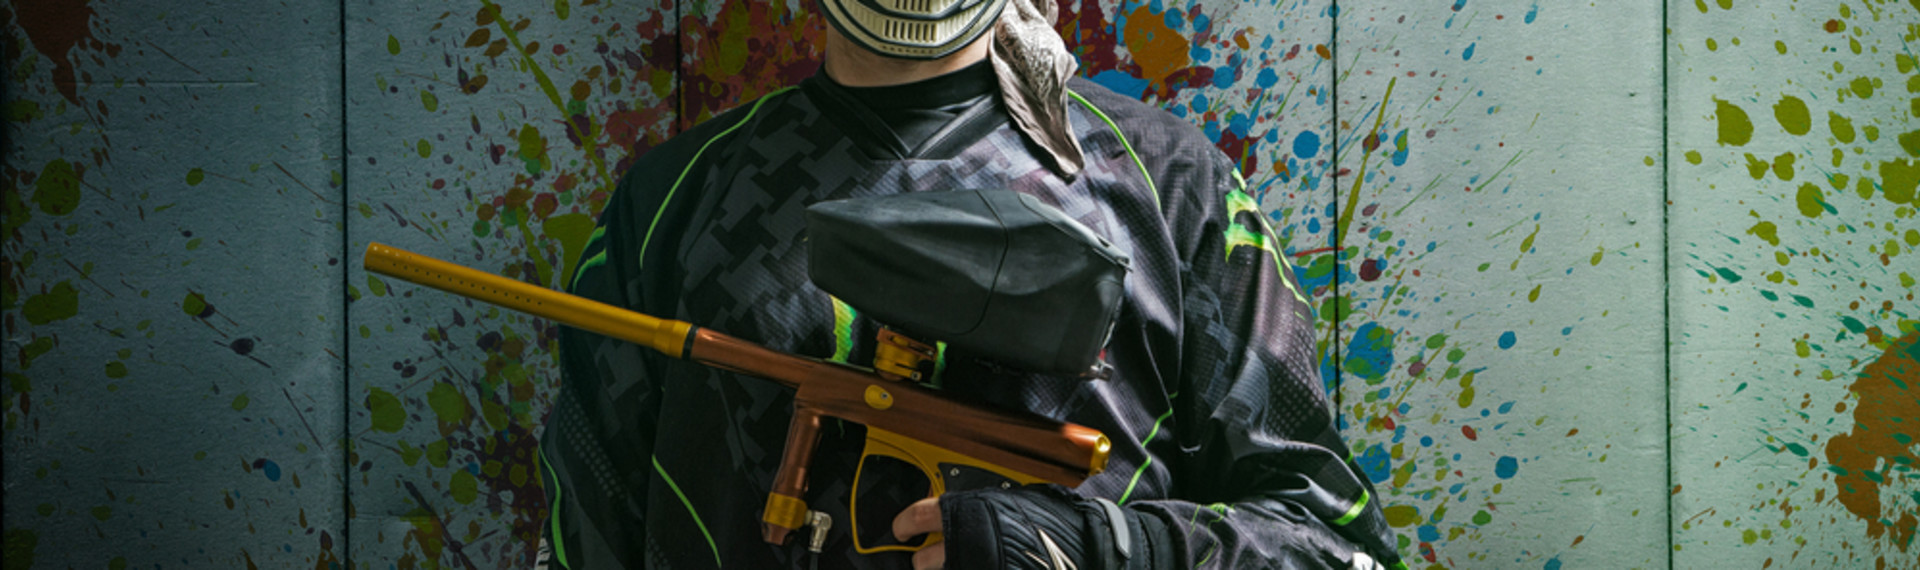 Paintball in Frankfurt spielen | Pissup Reisen